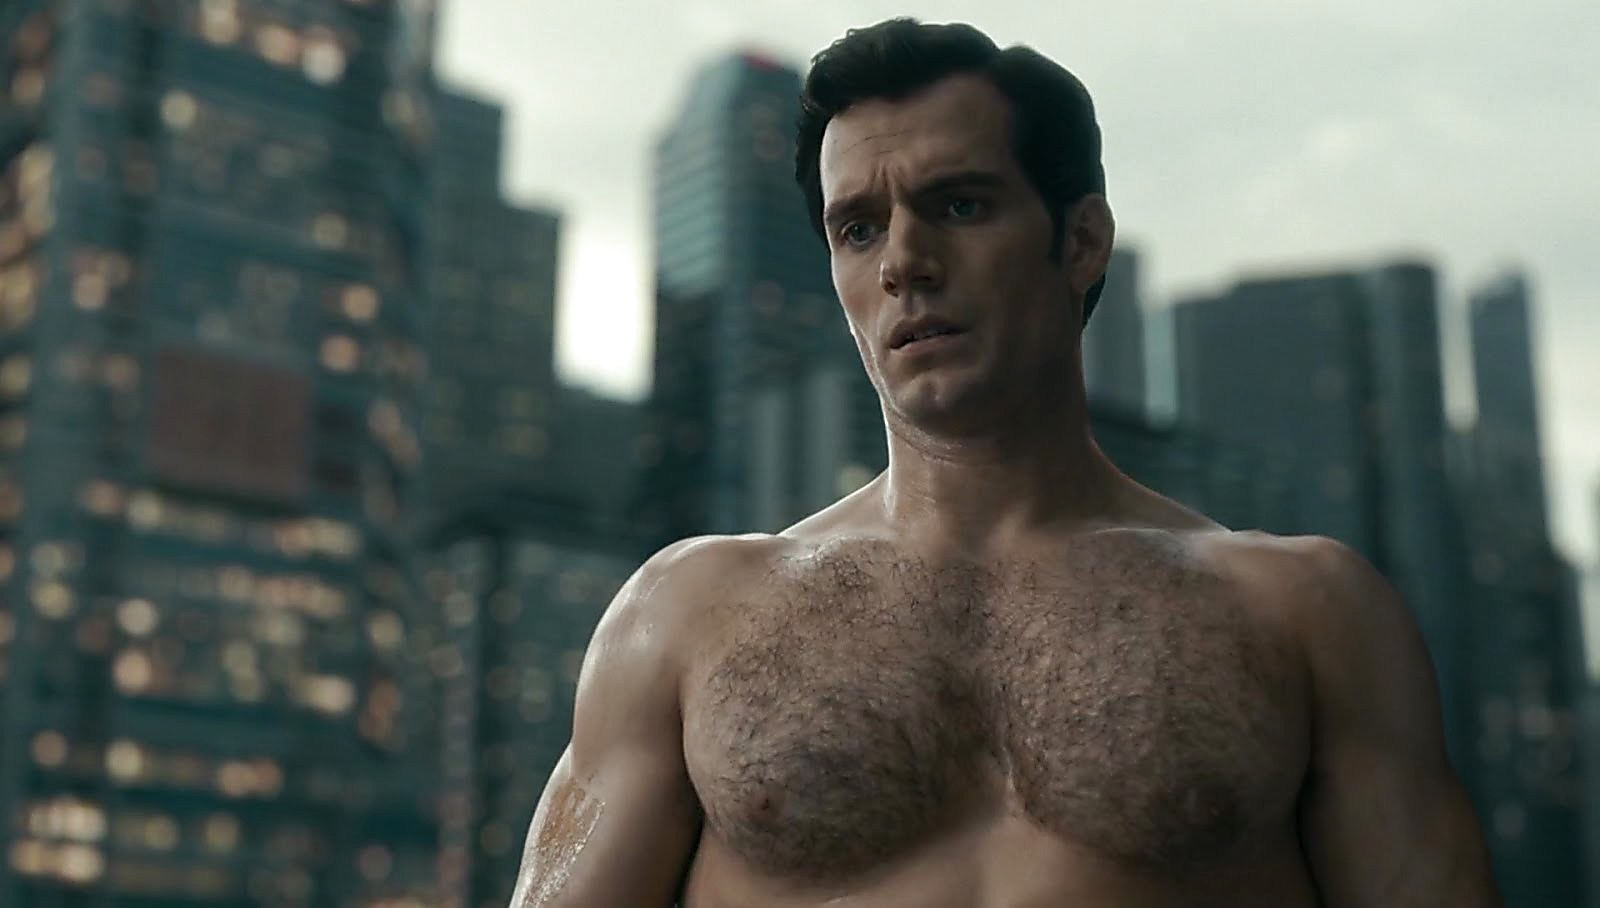 Henry Cavill Justice League 2018 02 13 0